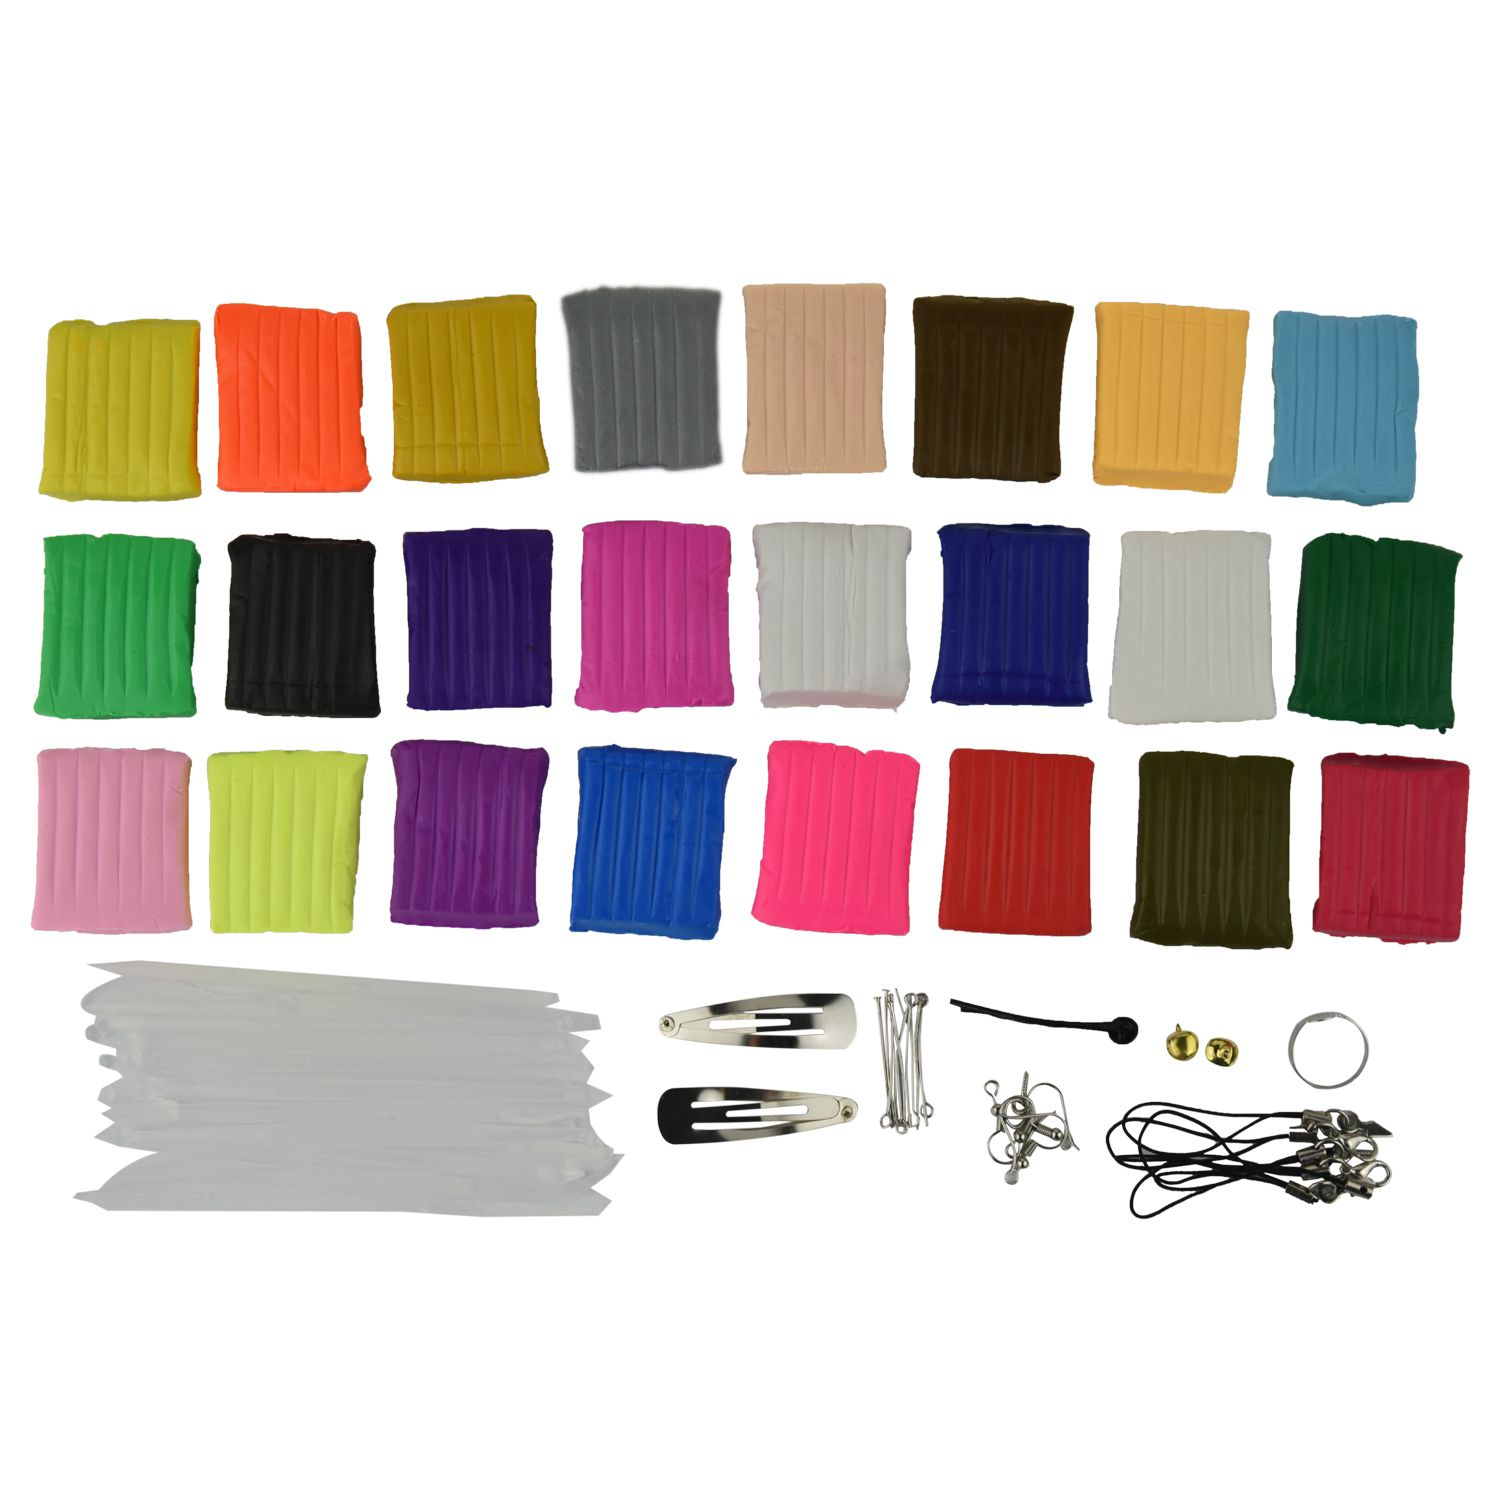 New 24 colors + Pate polymer modeling tools + accessories